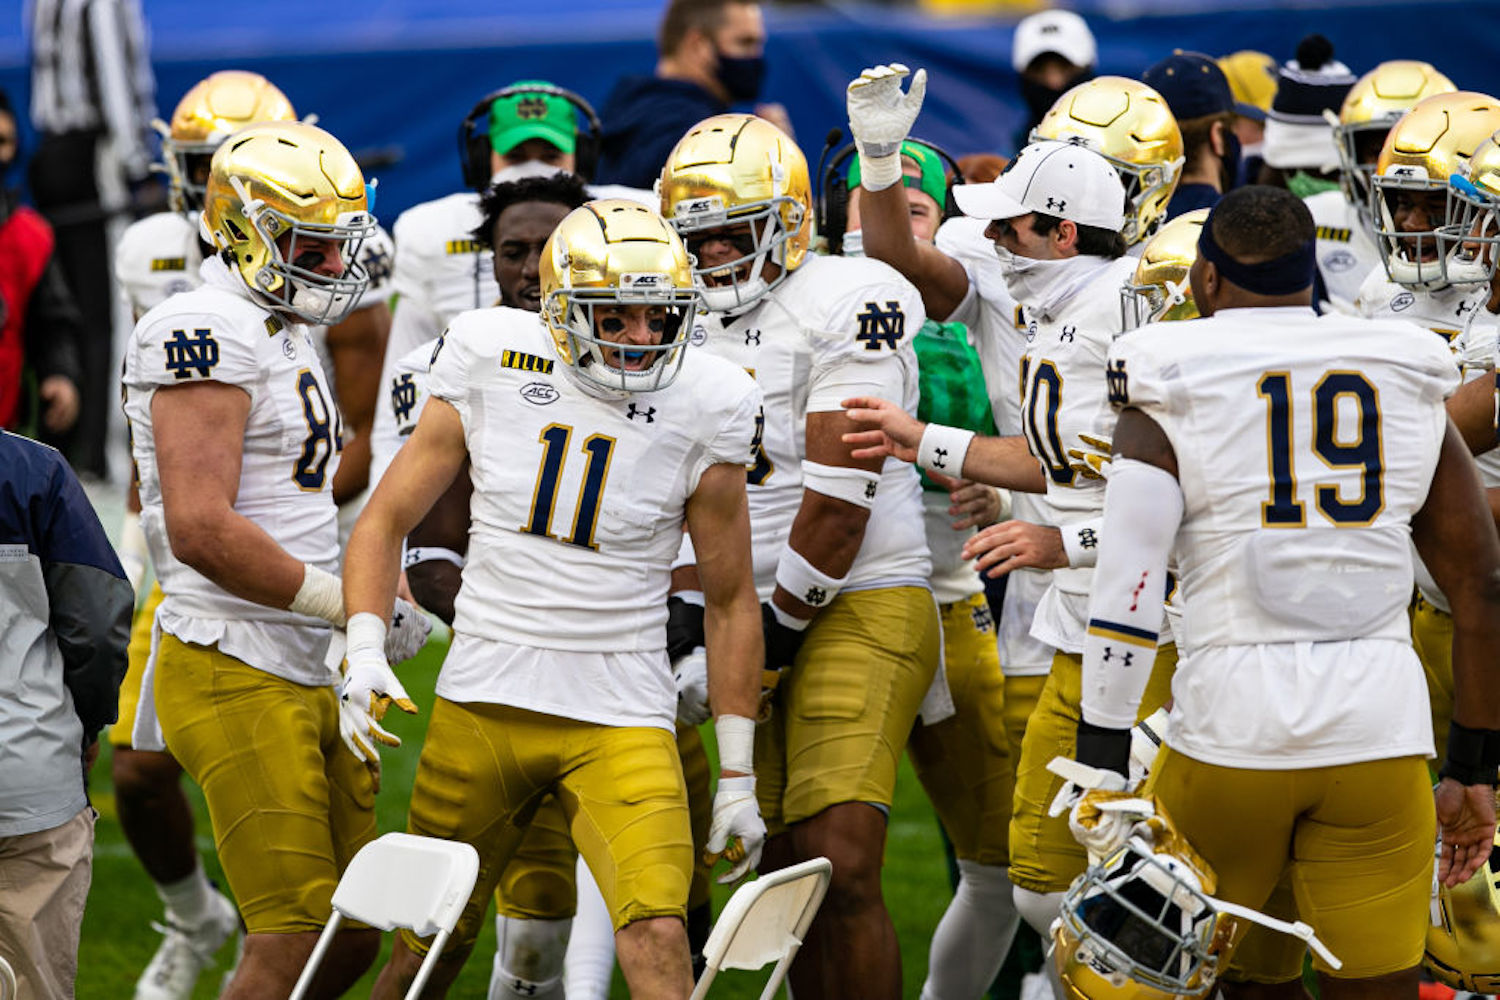 Notre Dame faces off against Clemson on Saturday night in college football's game of the week. Do they have any chance to pull off the upset?